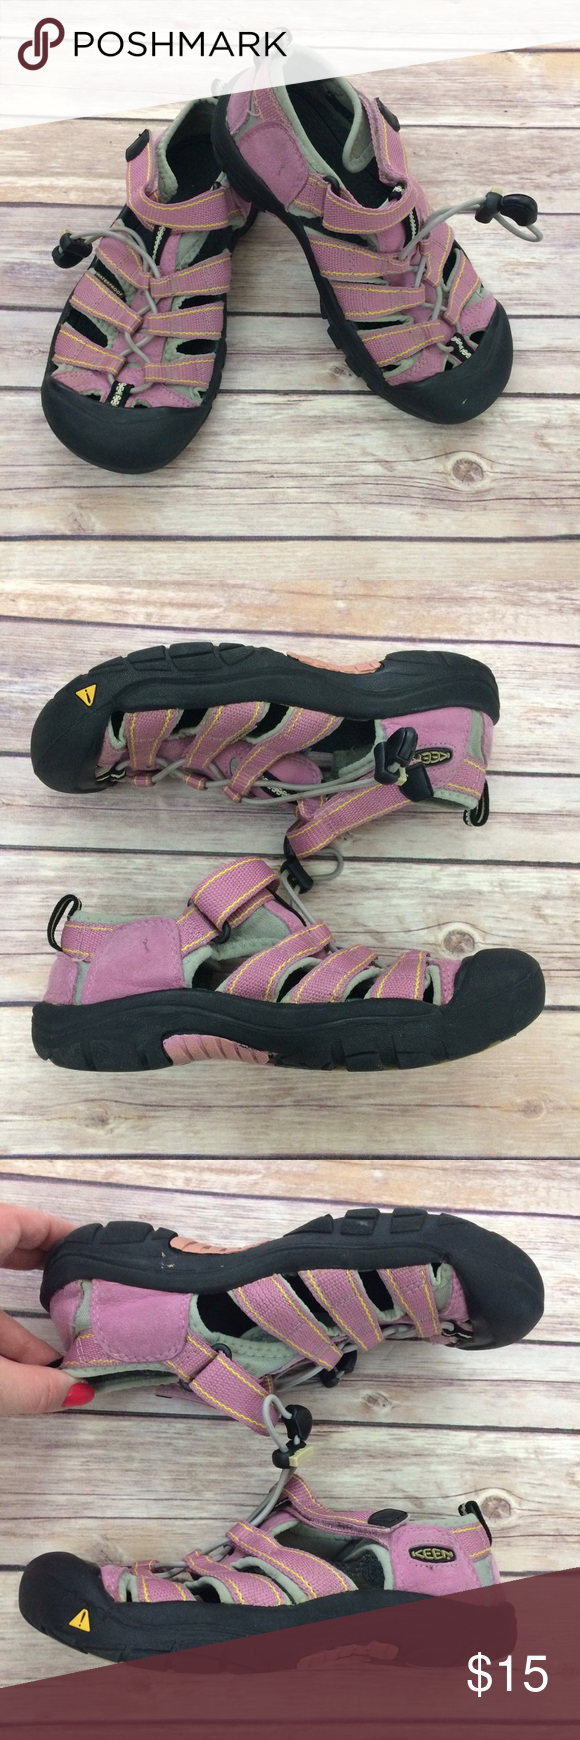 Keen Sandals Lavender waterproof sandals by Keen. Love that they're machine washable! VGUC for mild general wear. 12518 Keen Shoes Sandals & Flip Flops